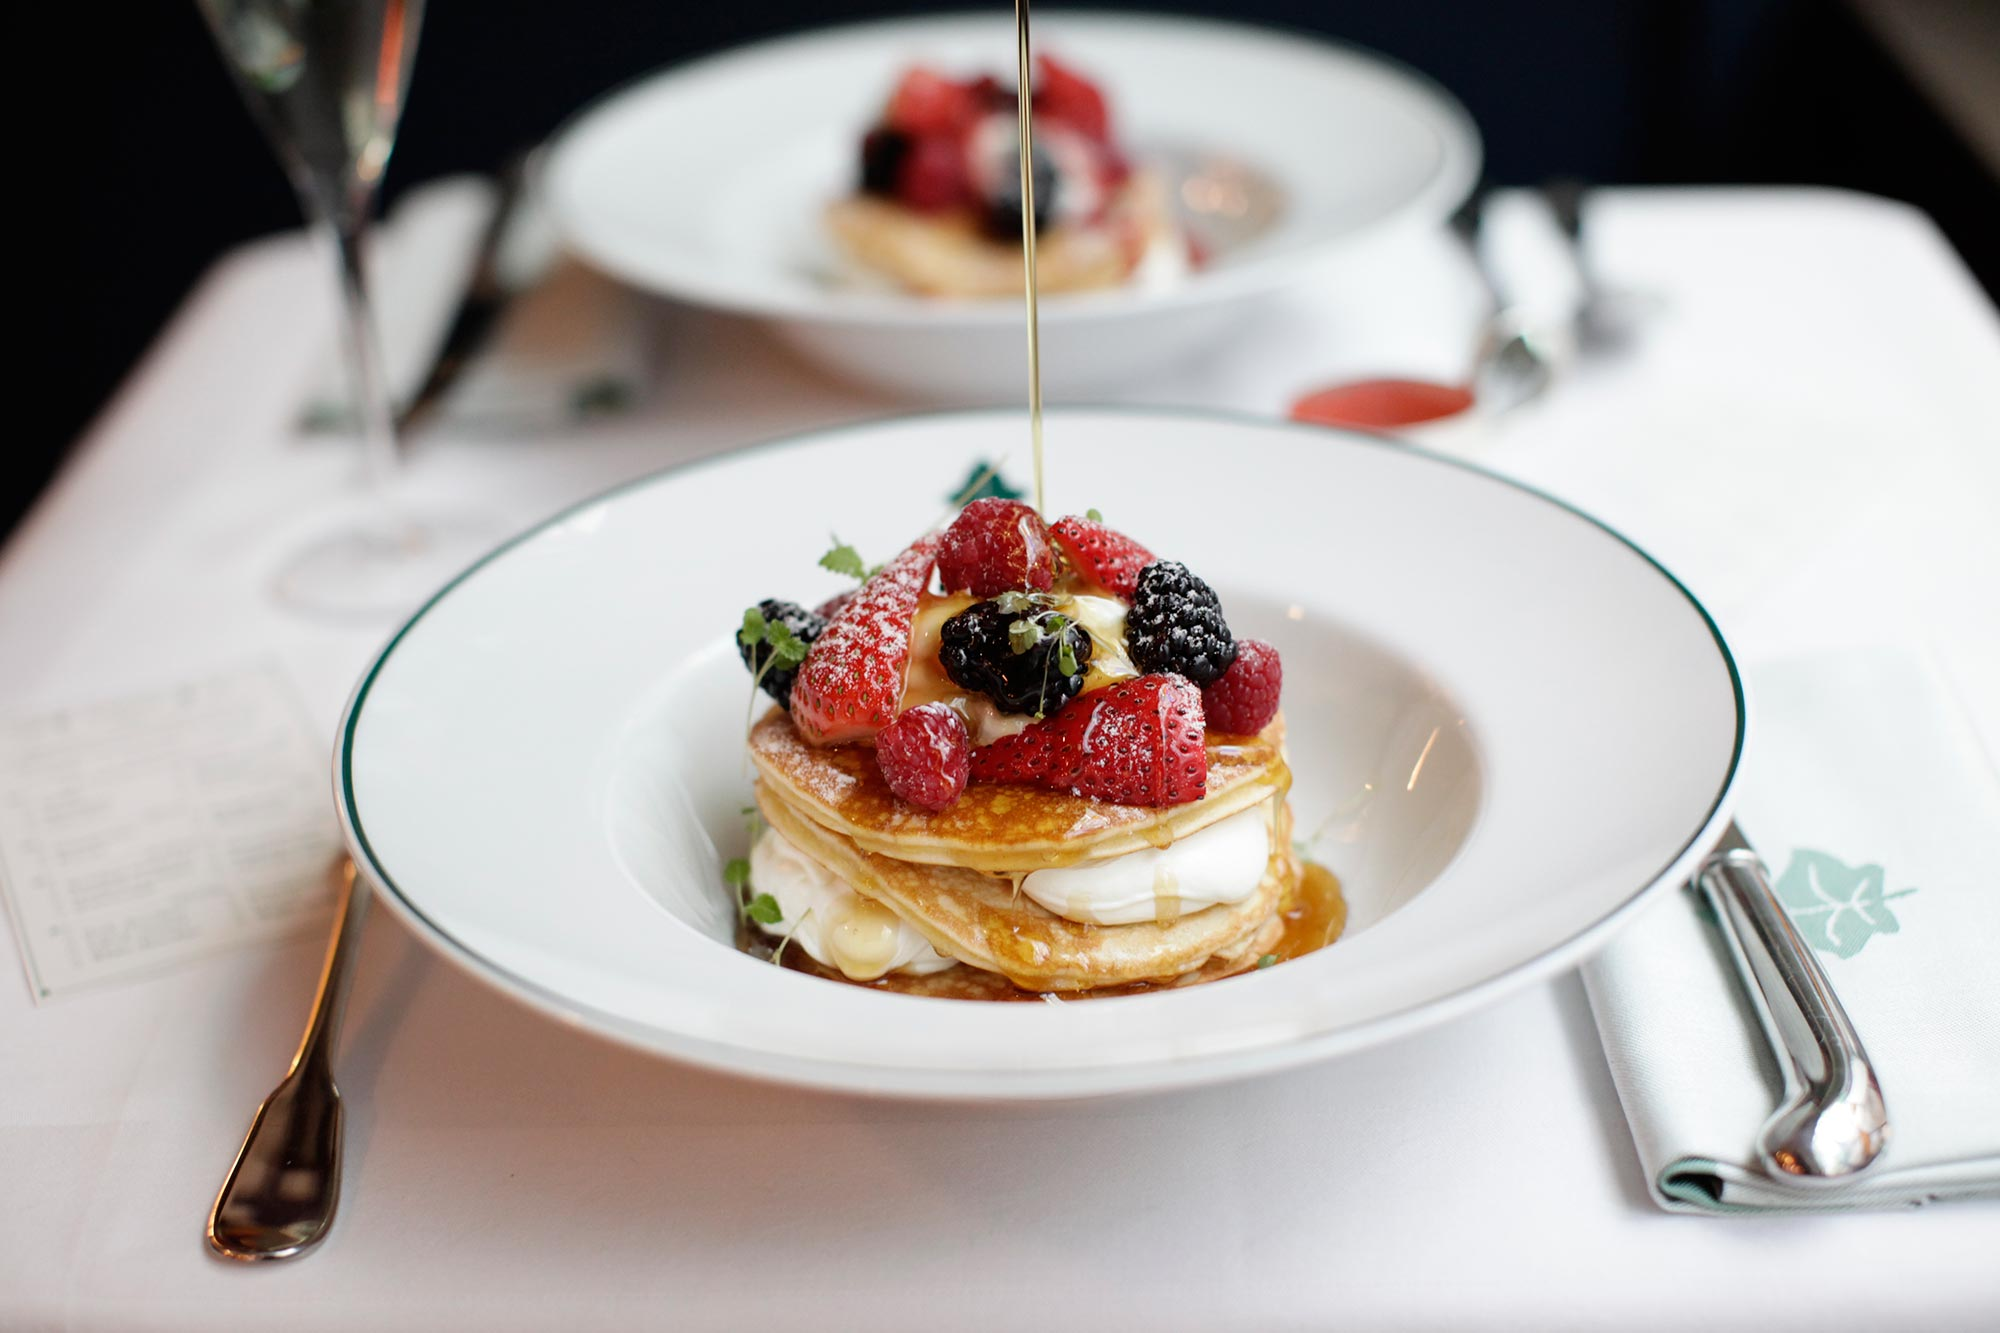 Breakfast and Brunch in Harrogate, The Ivy Harrogate Brasserie - Pancakes - The Ivy Harrogate